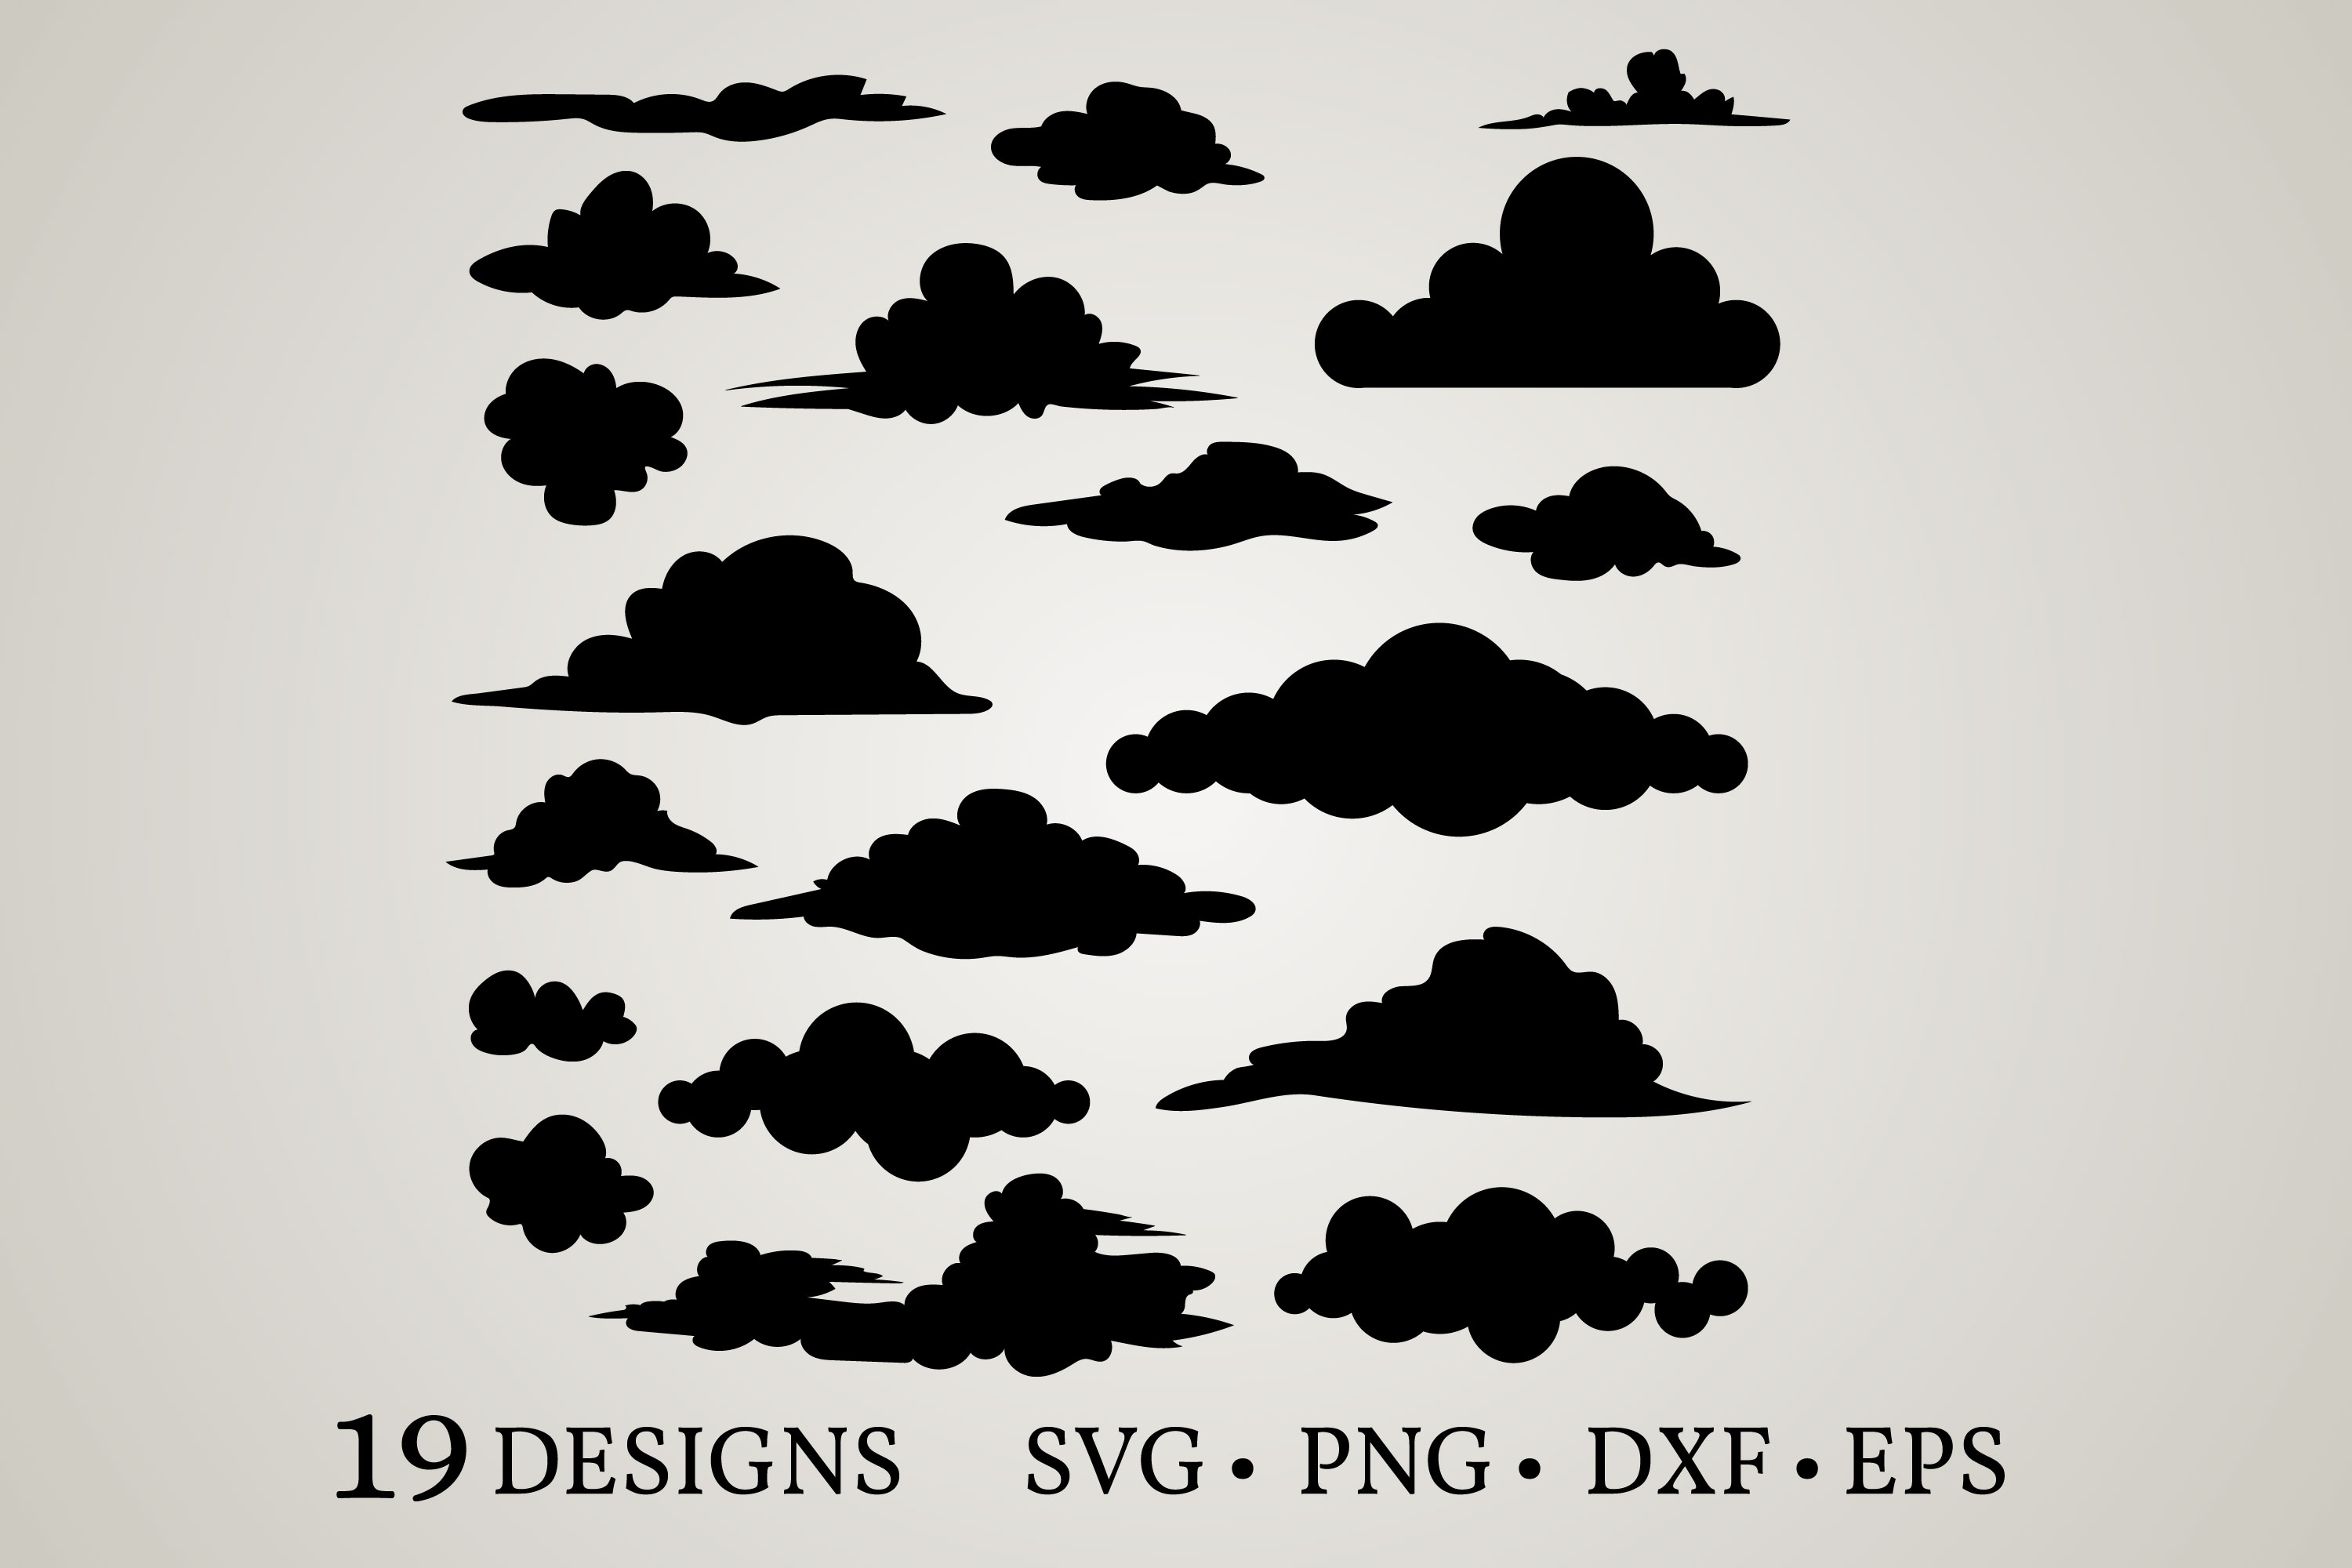 Download Free Cloud Bundle Graphic By Euphoria Design Creative Fabrica for Cricut Explore, Silhouette and other cutting machines.